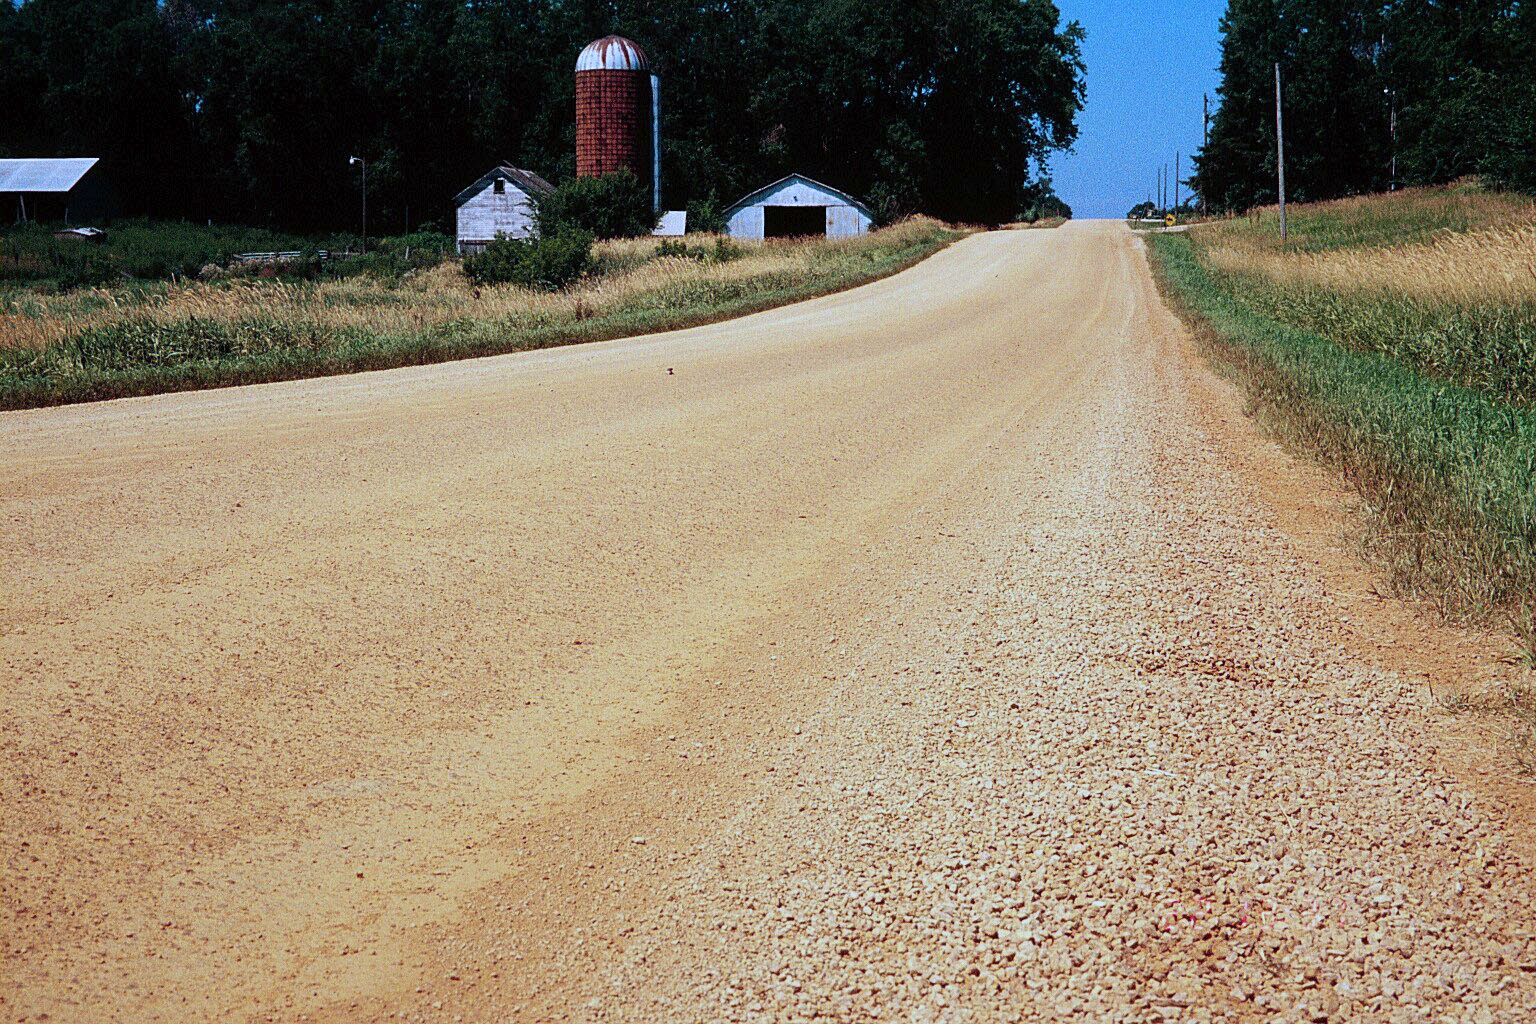 The new LRRB-funded gravel road management spreadsheet tool will help county road departments keep track of gravel road system needs and plan for the future.